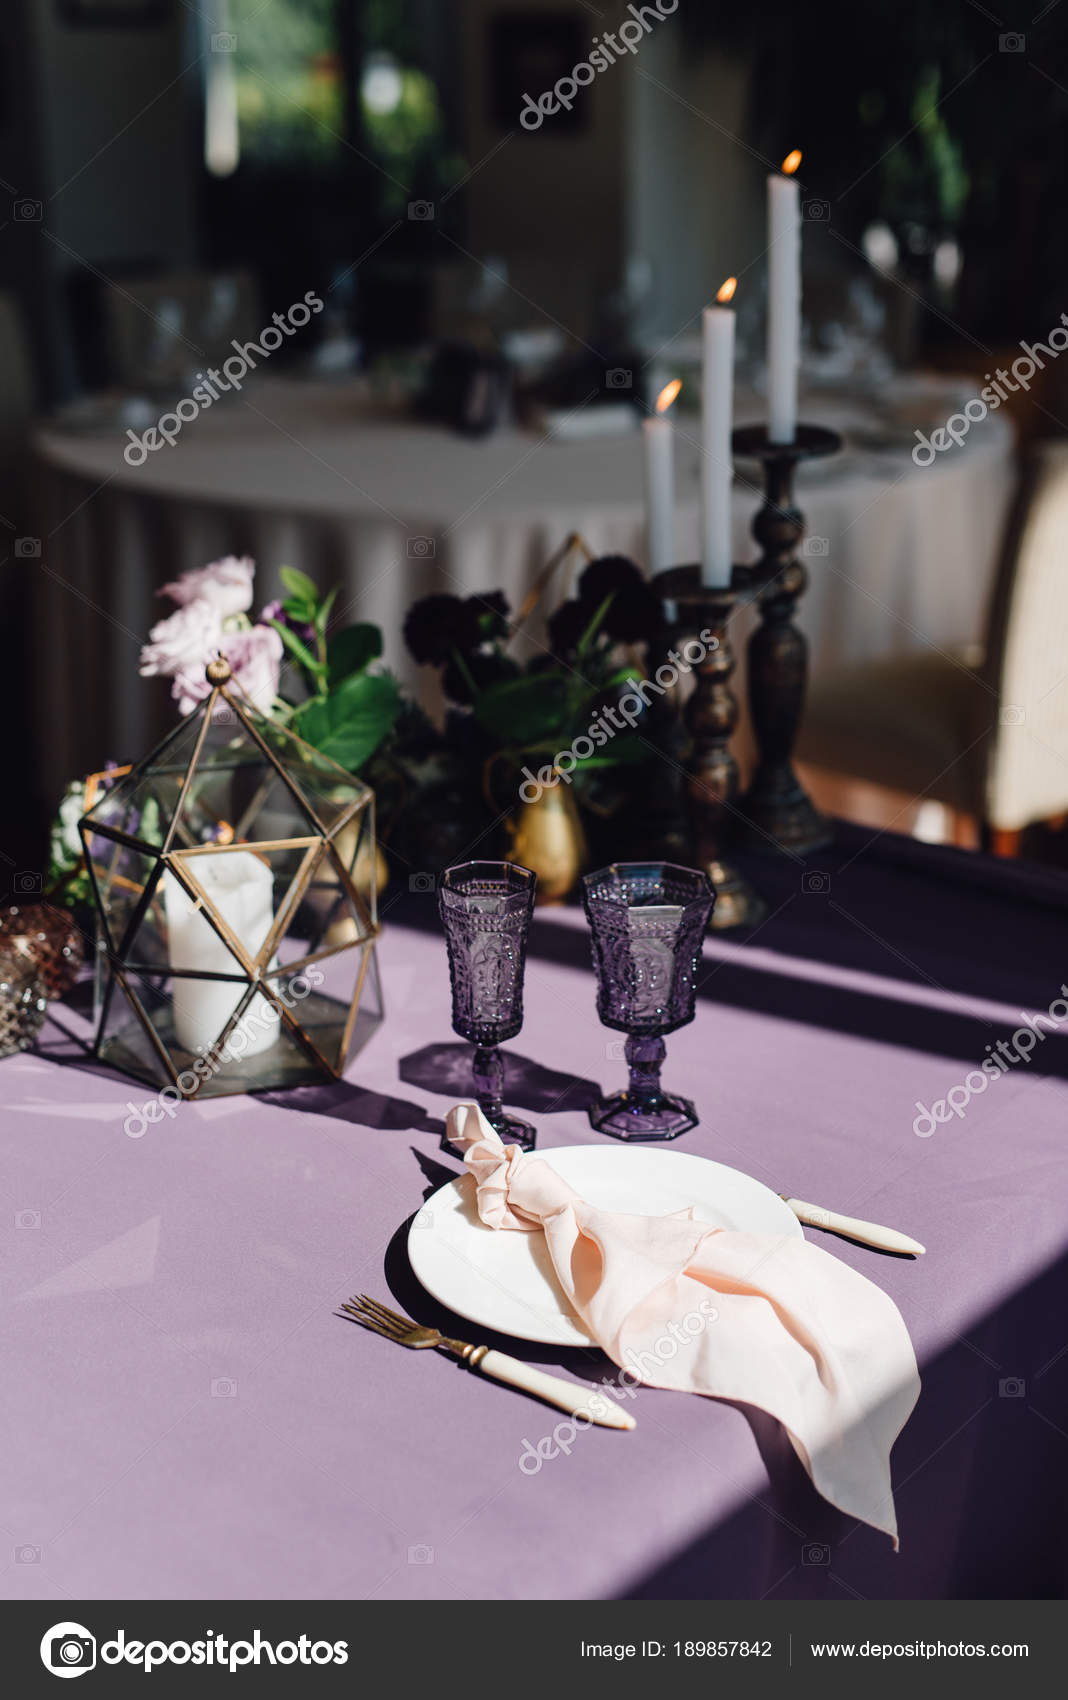 Closeup of wedding table with florariums white candles festive tableware and purple cloth u2014 Photo by dfrolovXIII & Closeup Wedding Table Florariums White Candles Festive Tableware ...